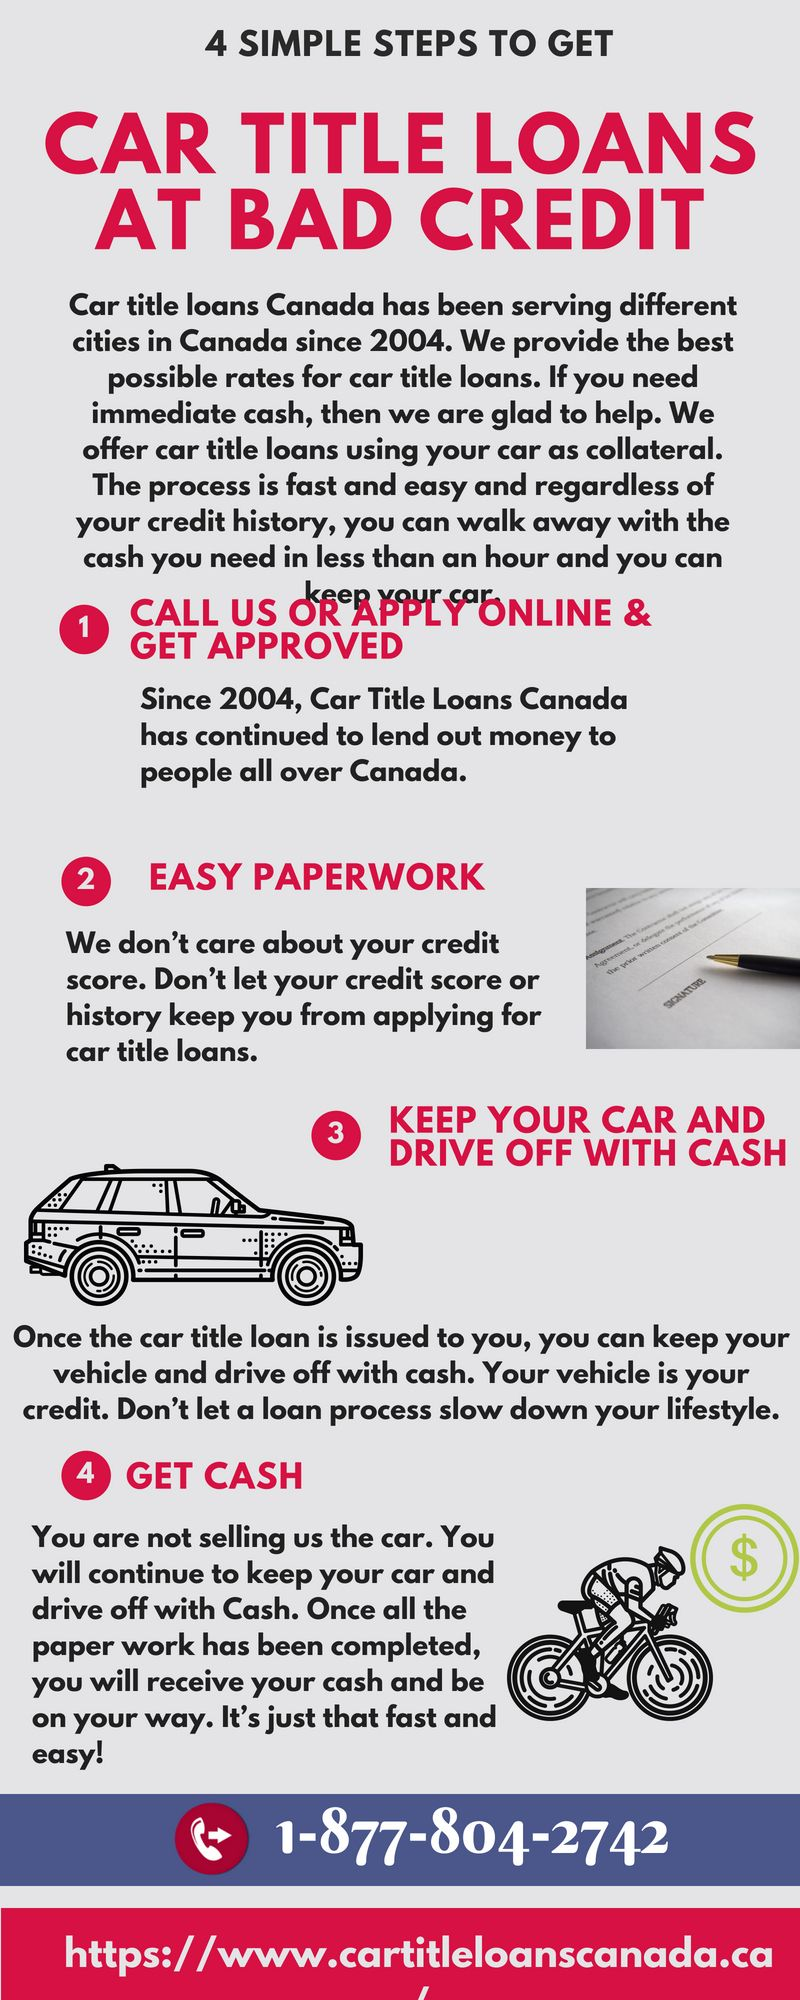 Car Title Loans Canada Offer Bad Credit Car Loans Services In Bc We Specializes In Providing Bad Credit Loa Bad Credit Car Loan Loans For Bad Credit Car Loans